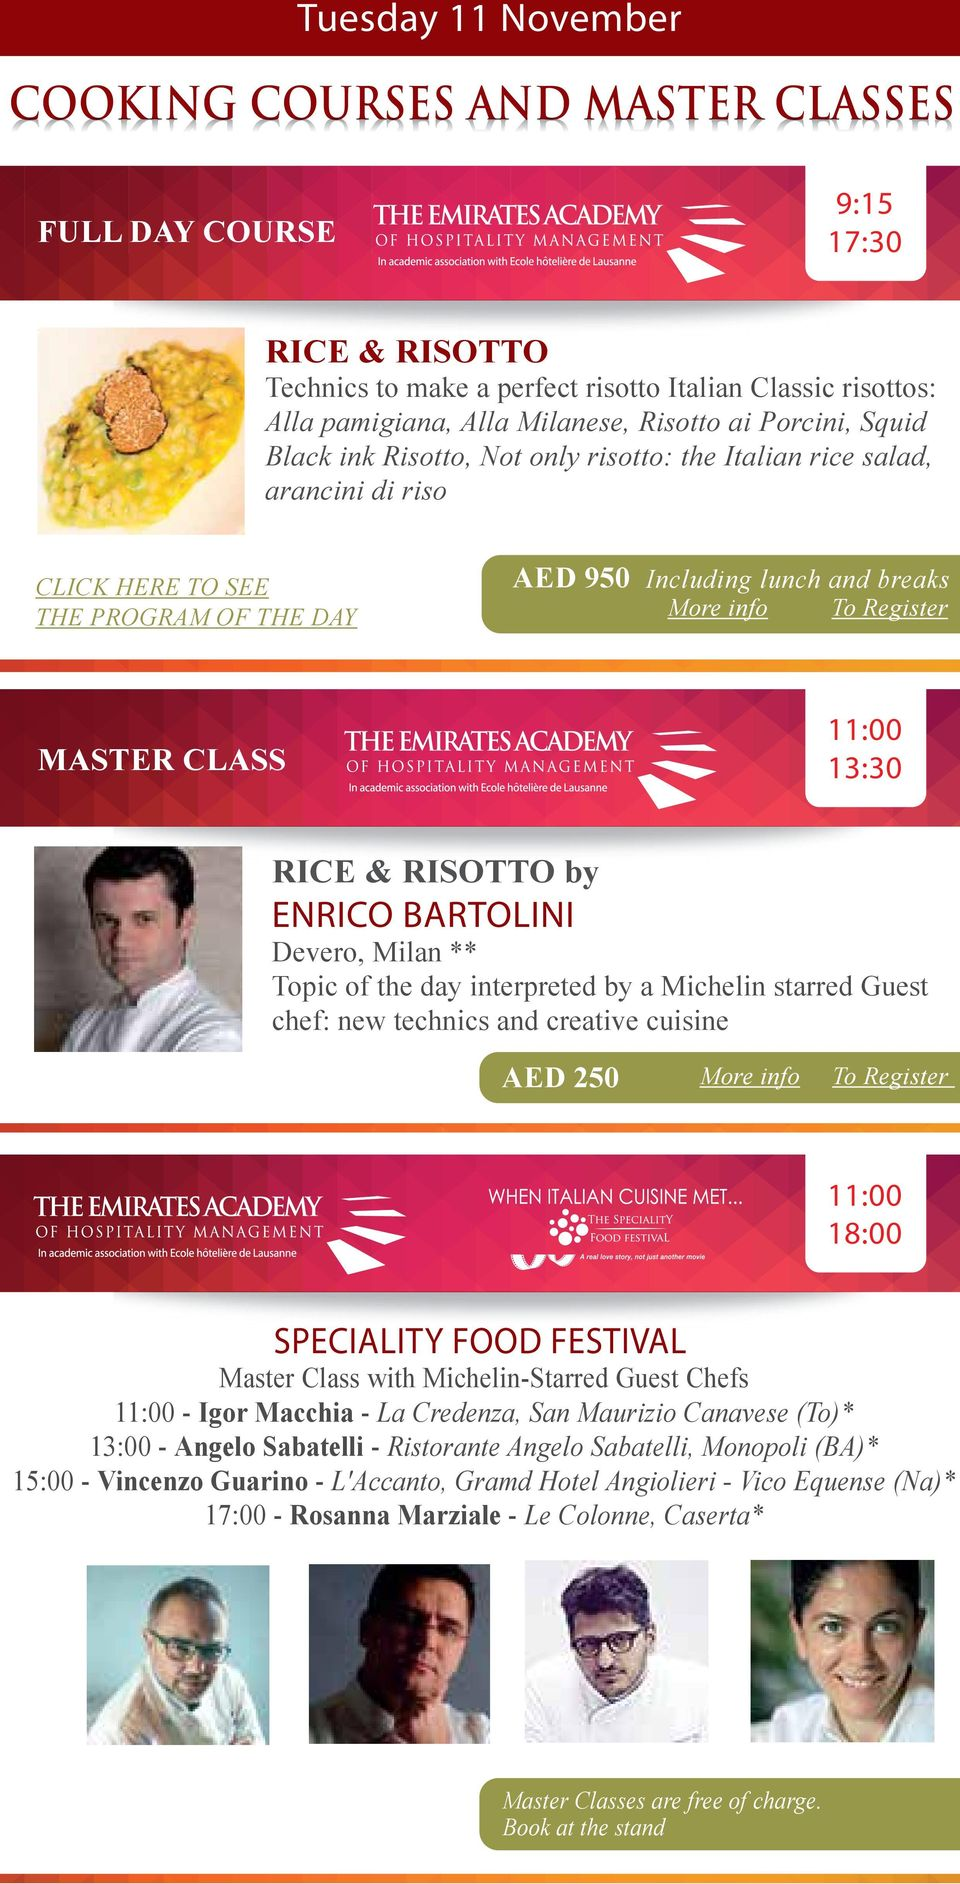 ENRICO BARTOLINI Devero, Milan ** Topic of the day interpreted by a Michelin starred Guest chef: new technics and creative cuisine AED 250 18:00 SPECIALITY FOOD FESTIVAL Master Class with